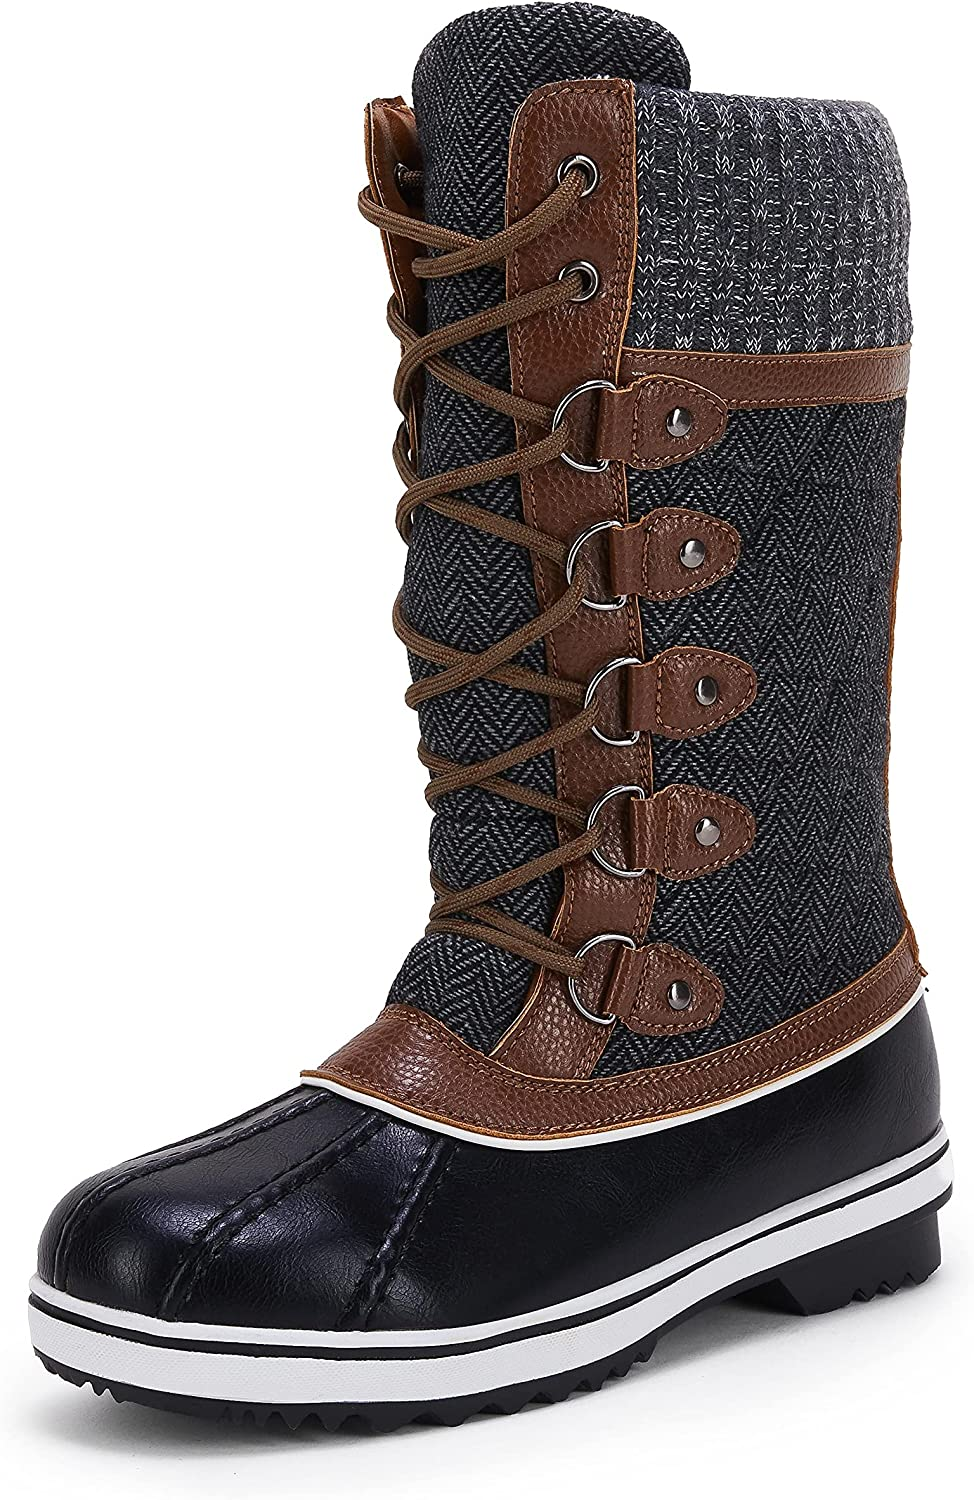 Women's Mid-Calf Winter Snow Boots Warm Waterproof Insulated Fashion Outdoor Shoes